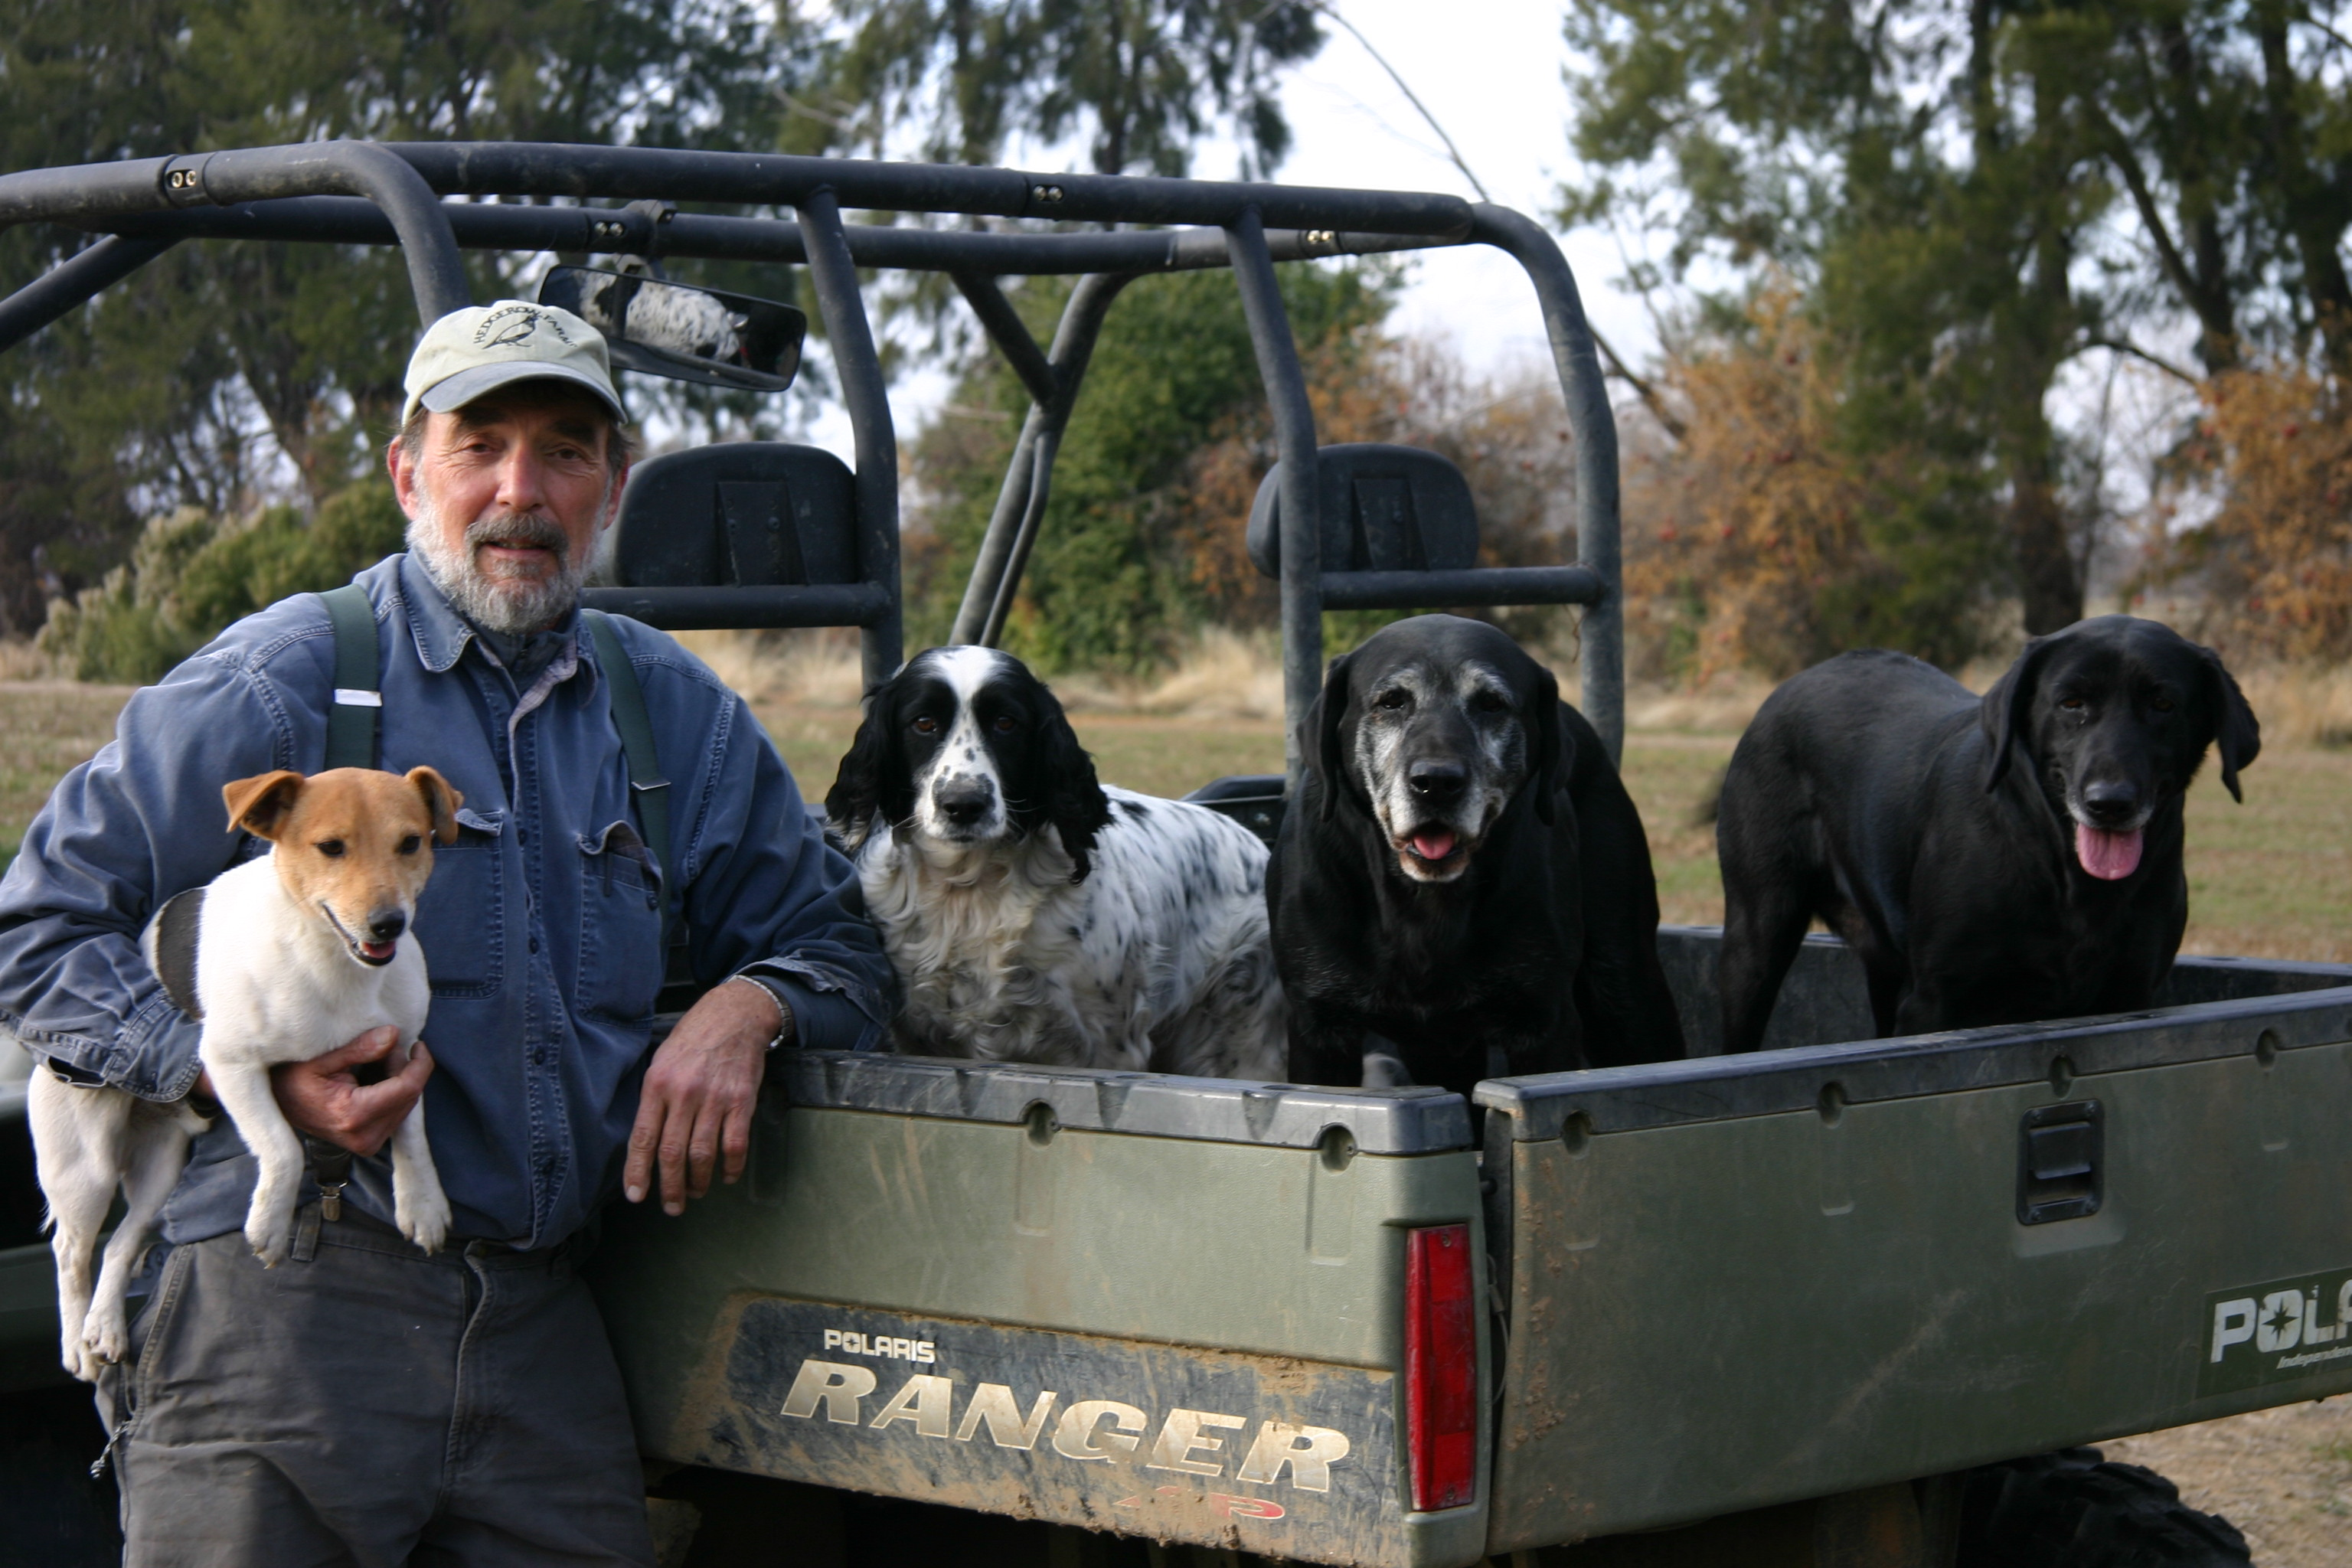 John Anderson and his dogs